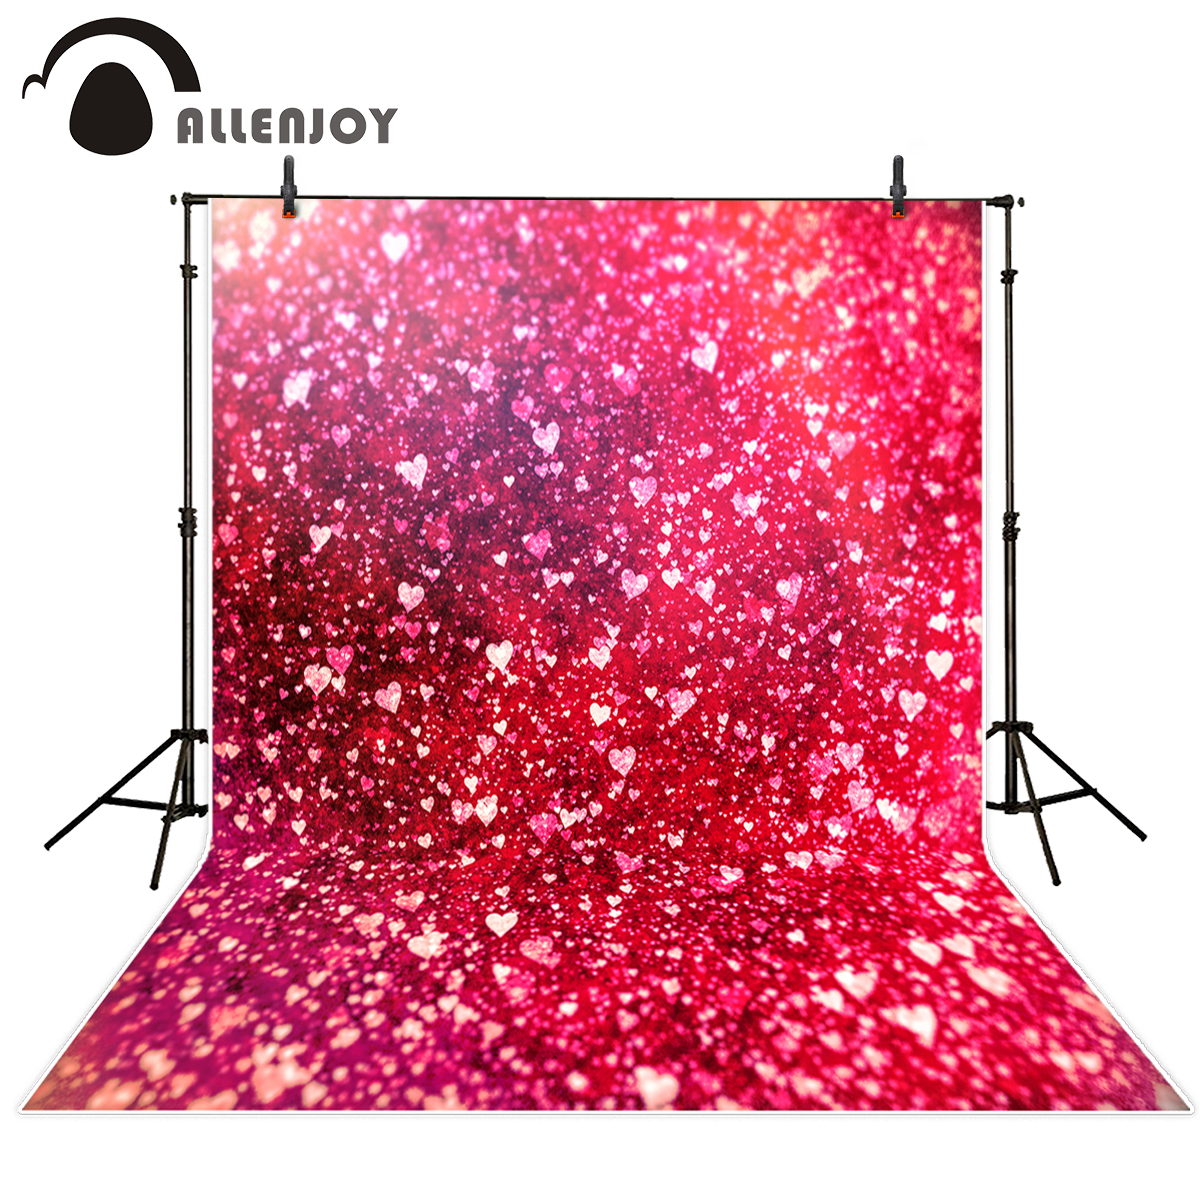 Allenjoy photography backdrops Valentine's Day heart love pink bokeh wedding photography background for studio photo background